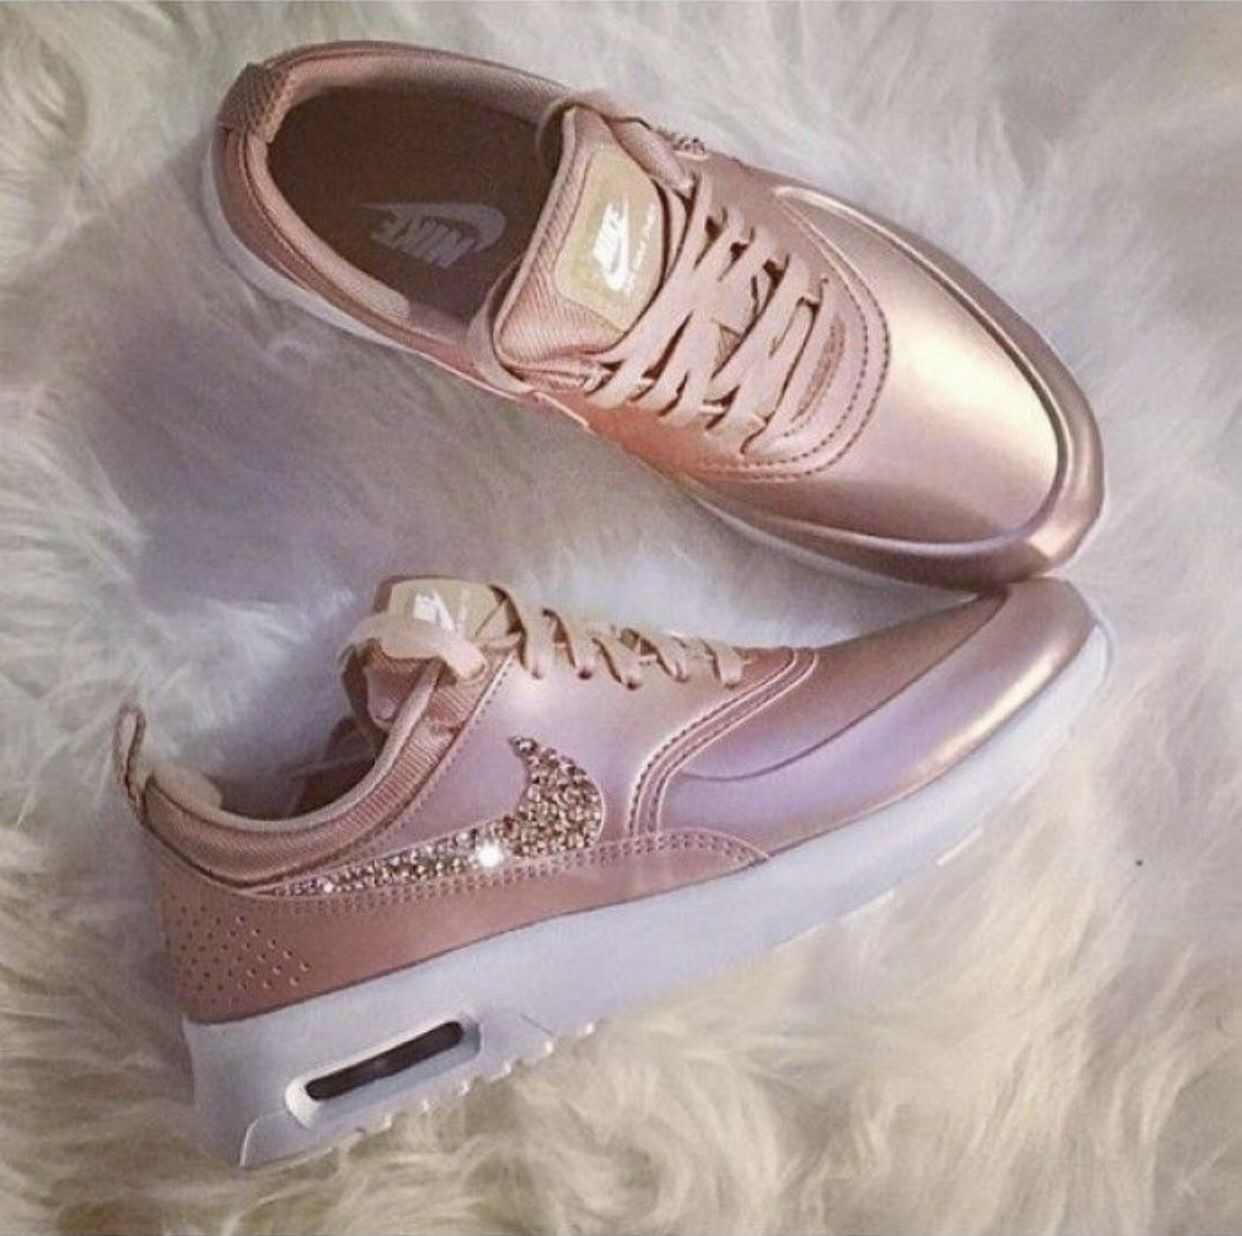 Sneaker nikes | Cute shoes, Sport shoes, Shoes